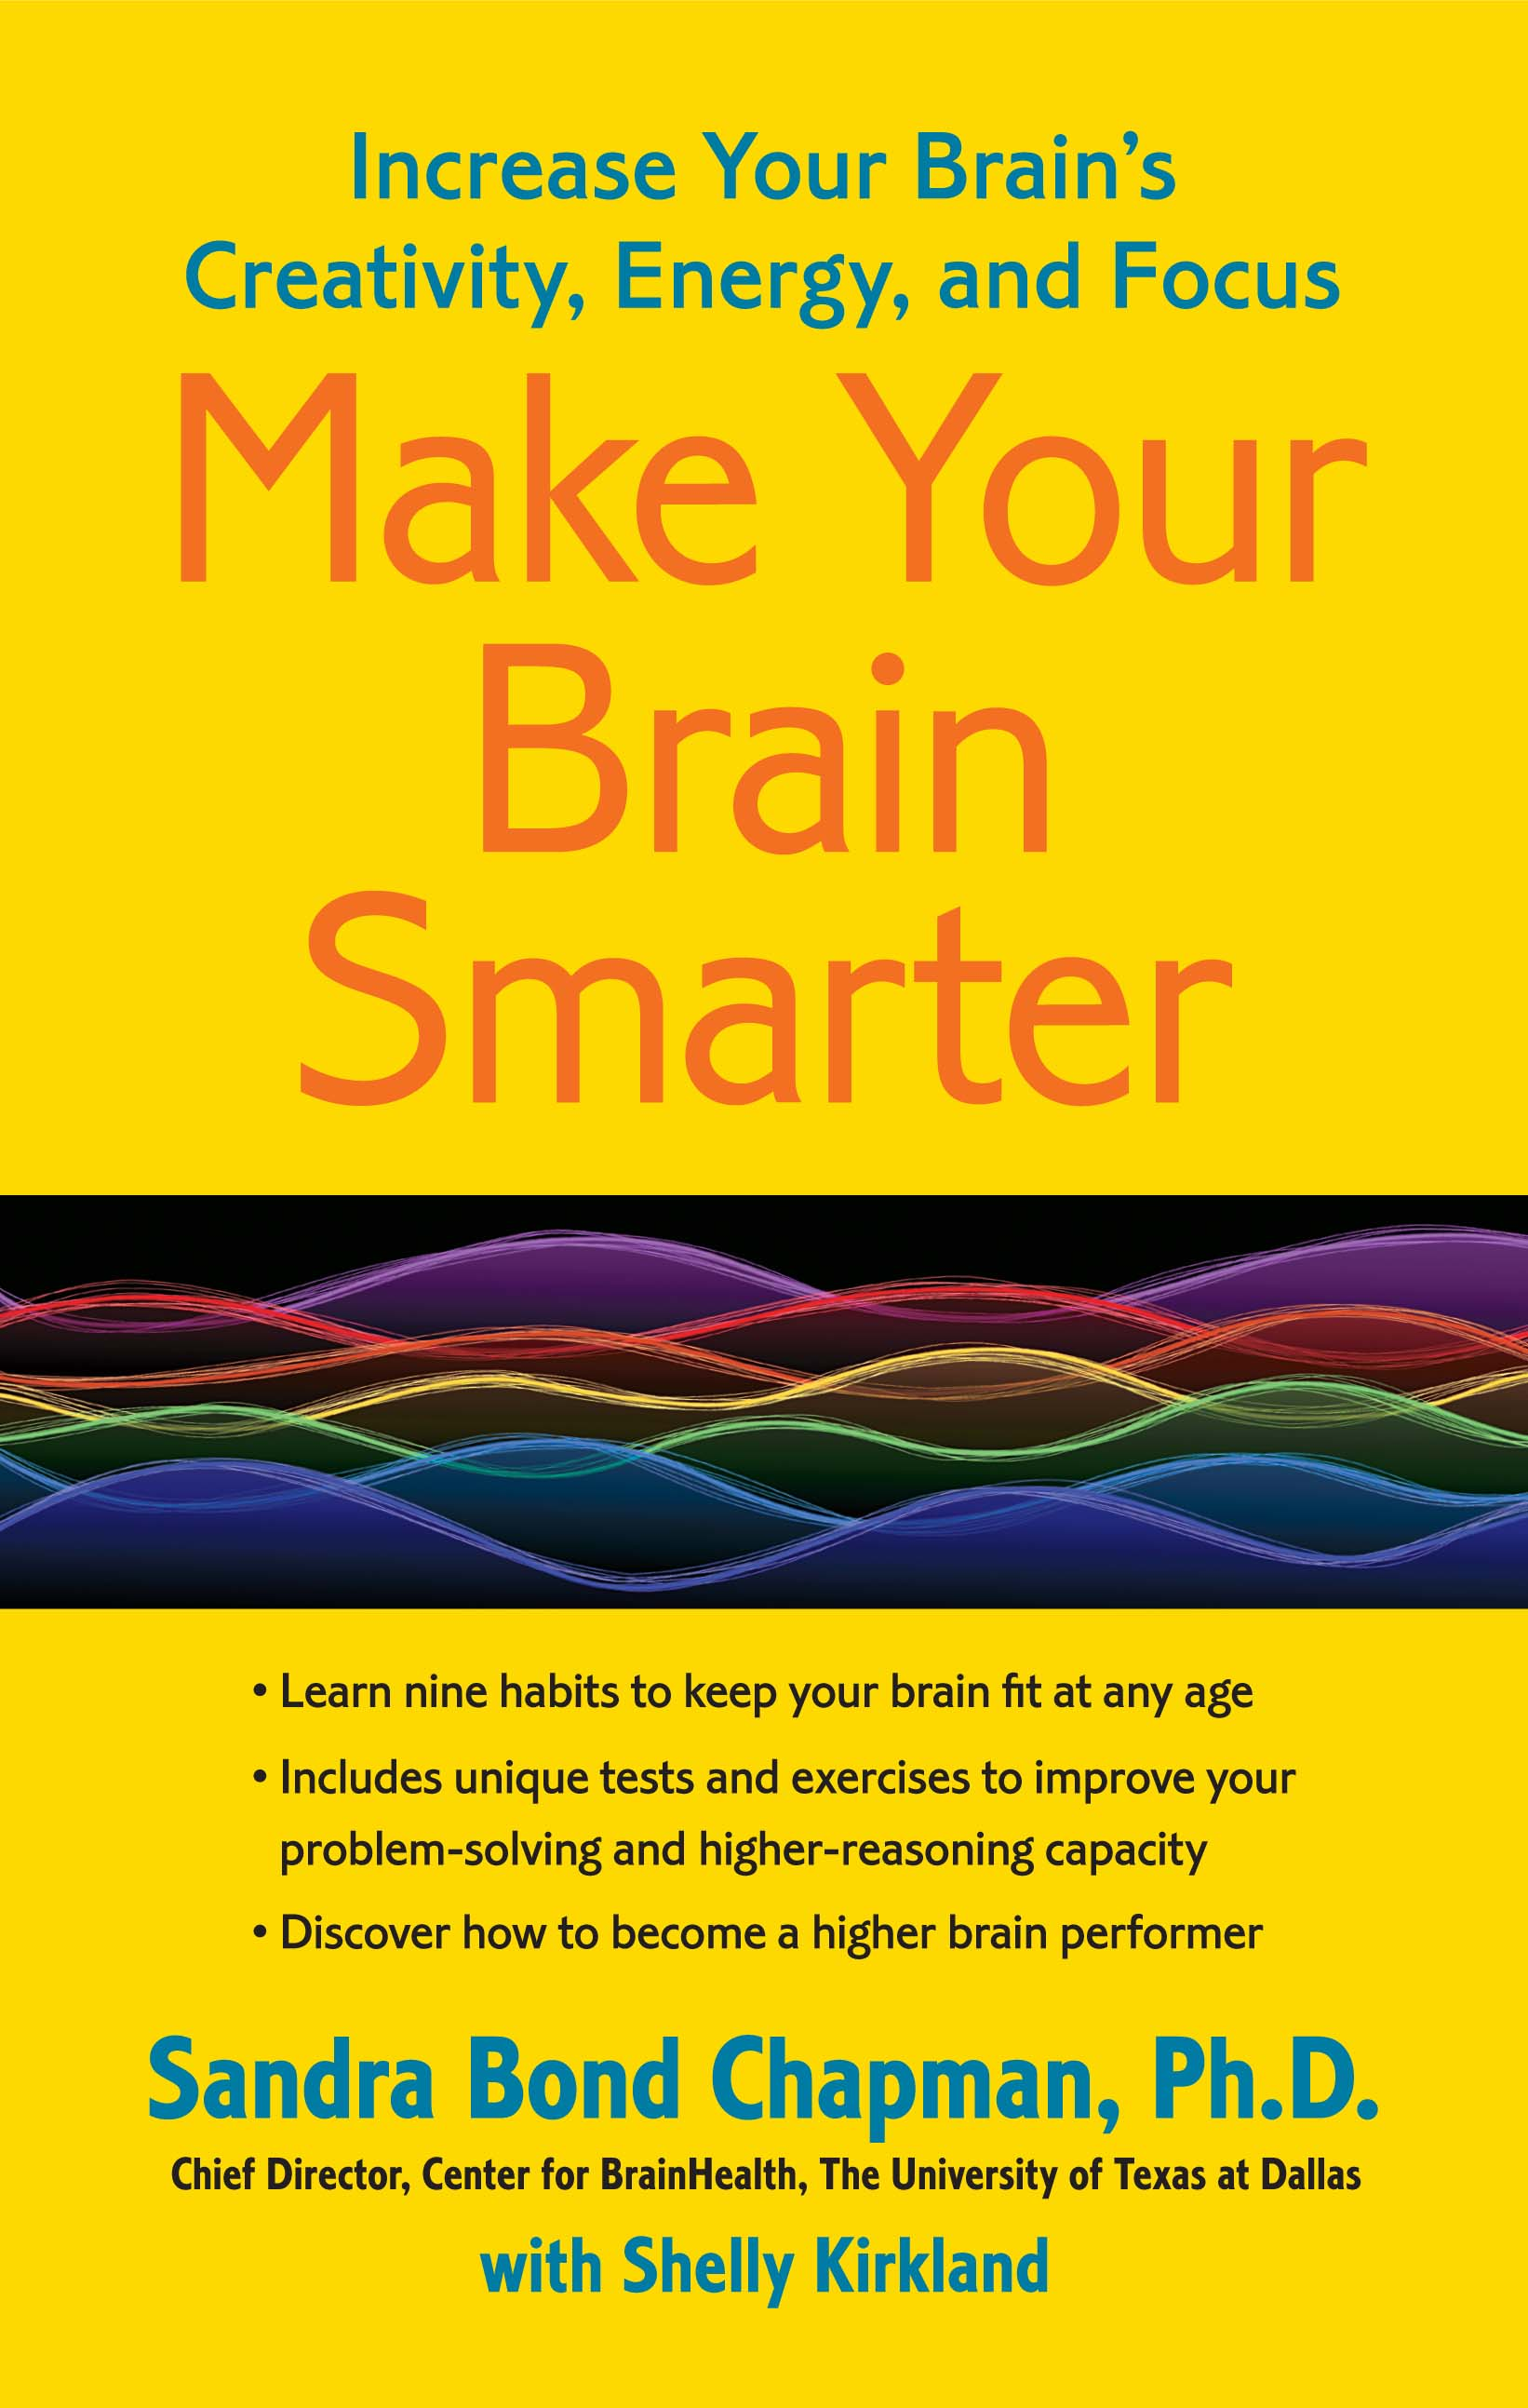 How to become smarter - exercises and step by step instructions 83